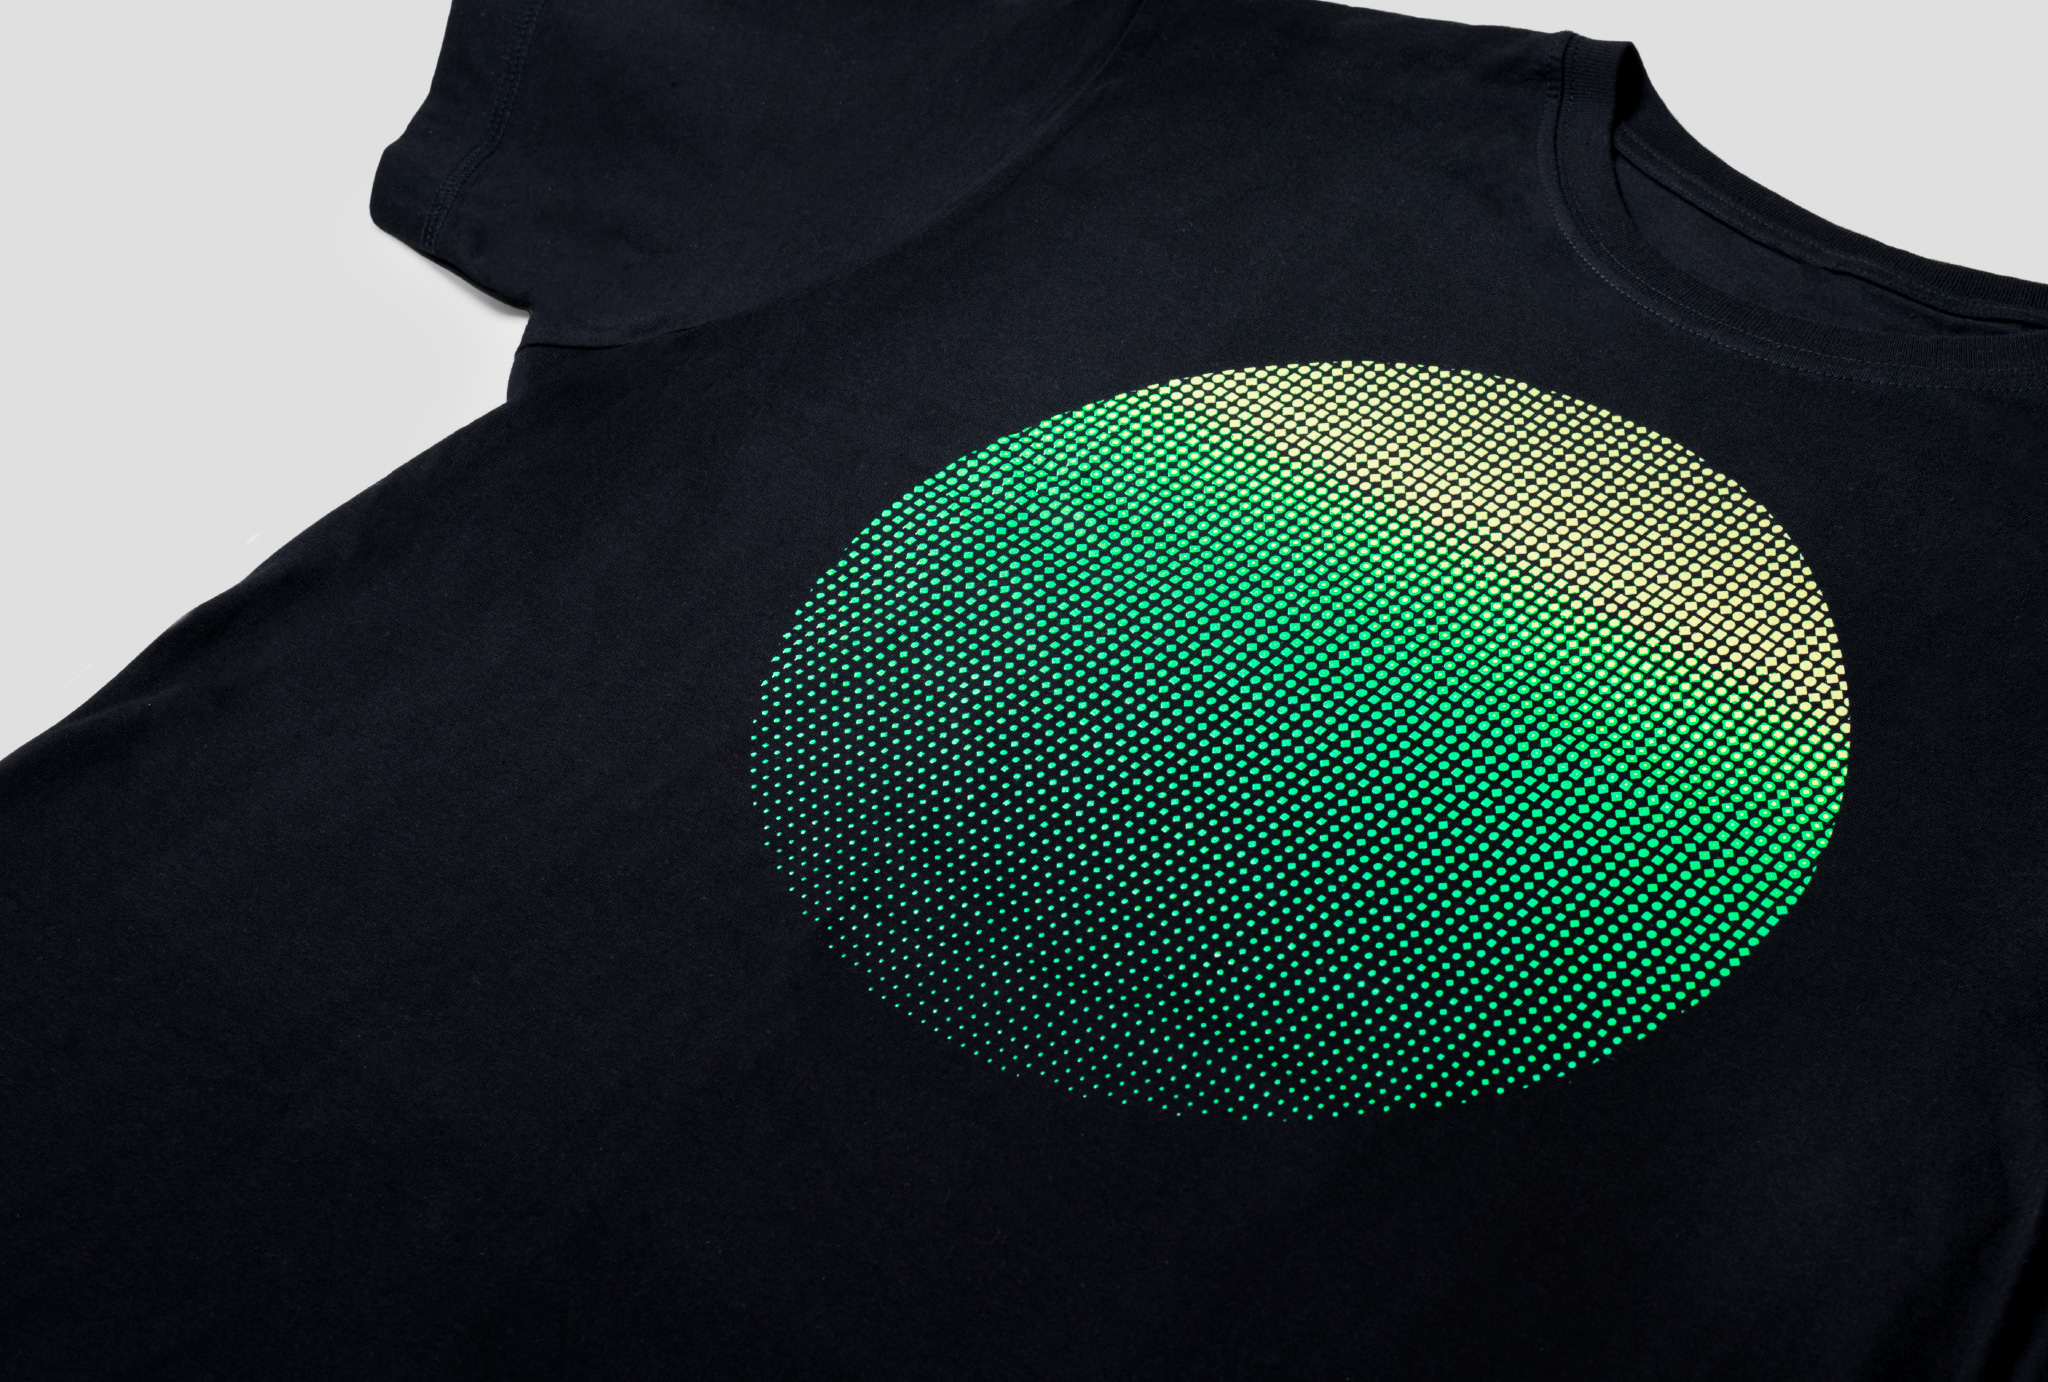 close up on black t-shirt with printed green circle